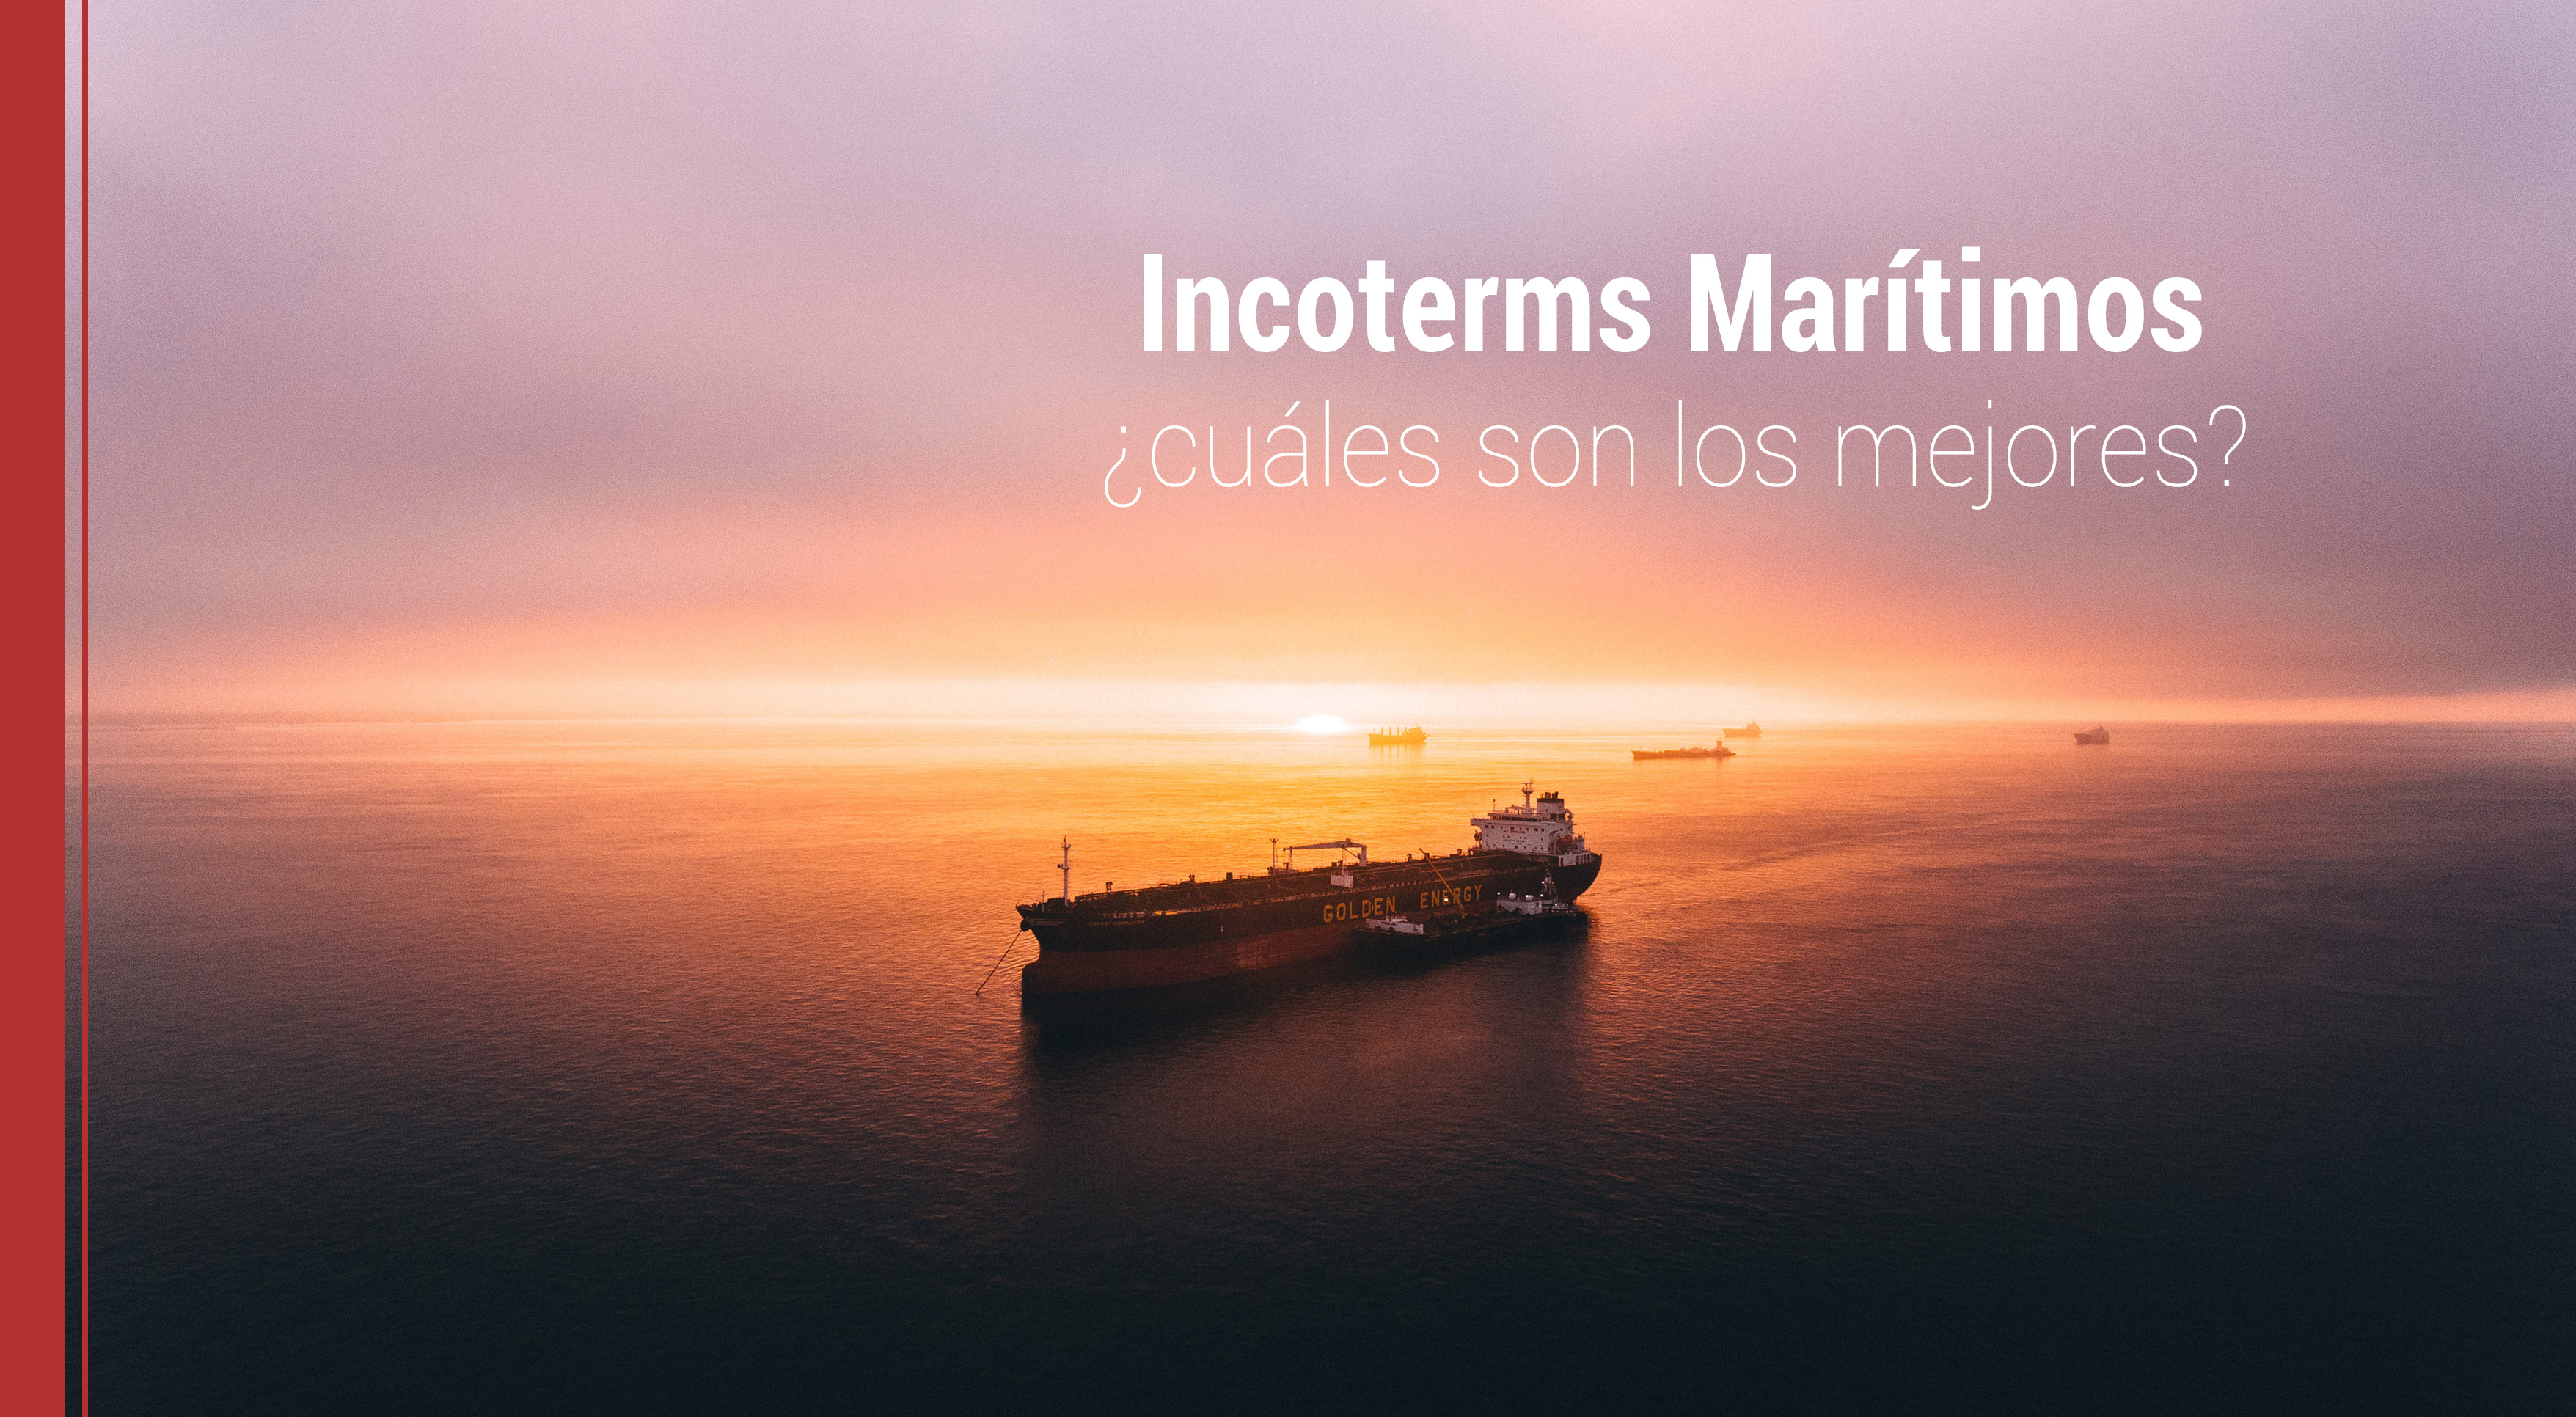 los mejores incoterms maritimos